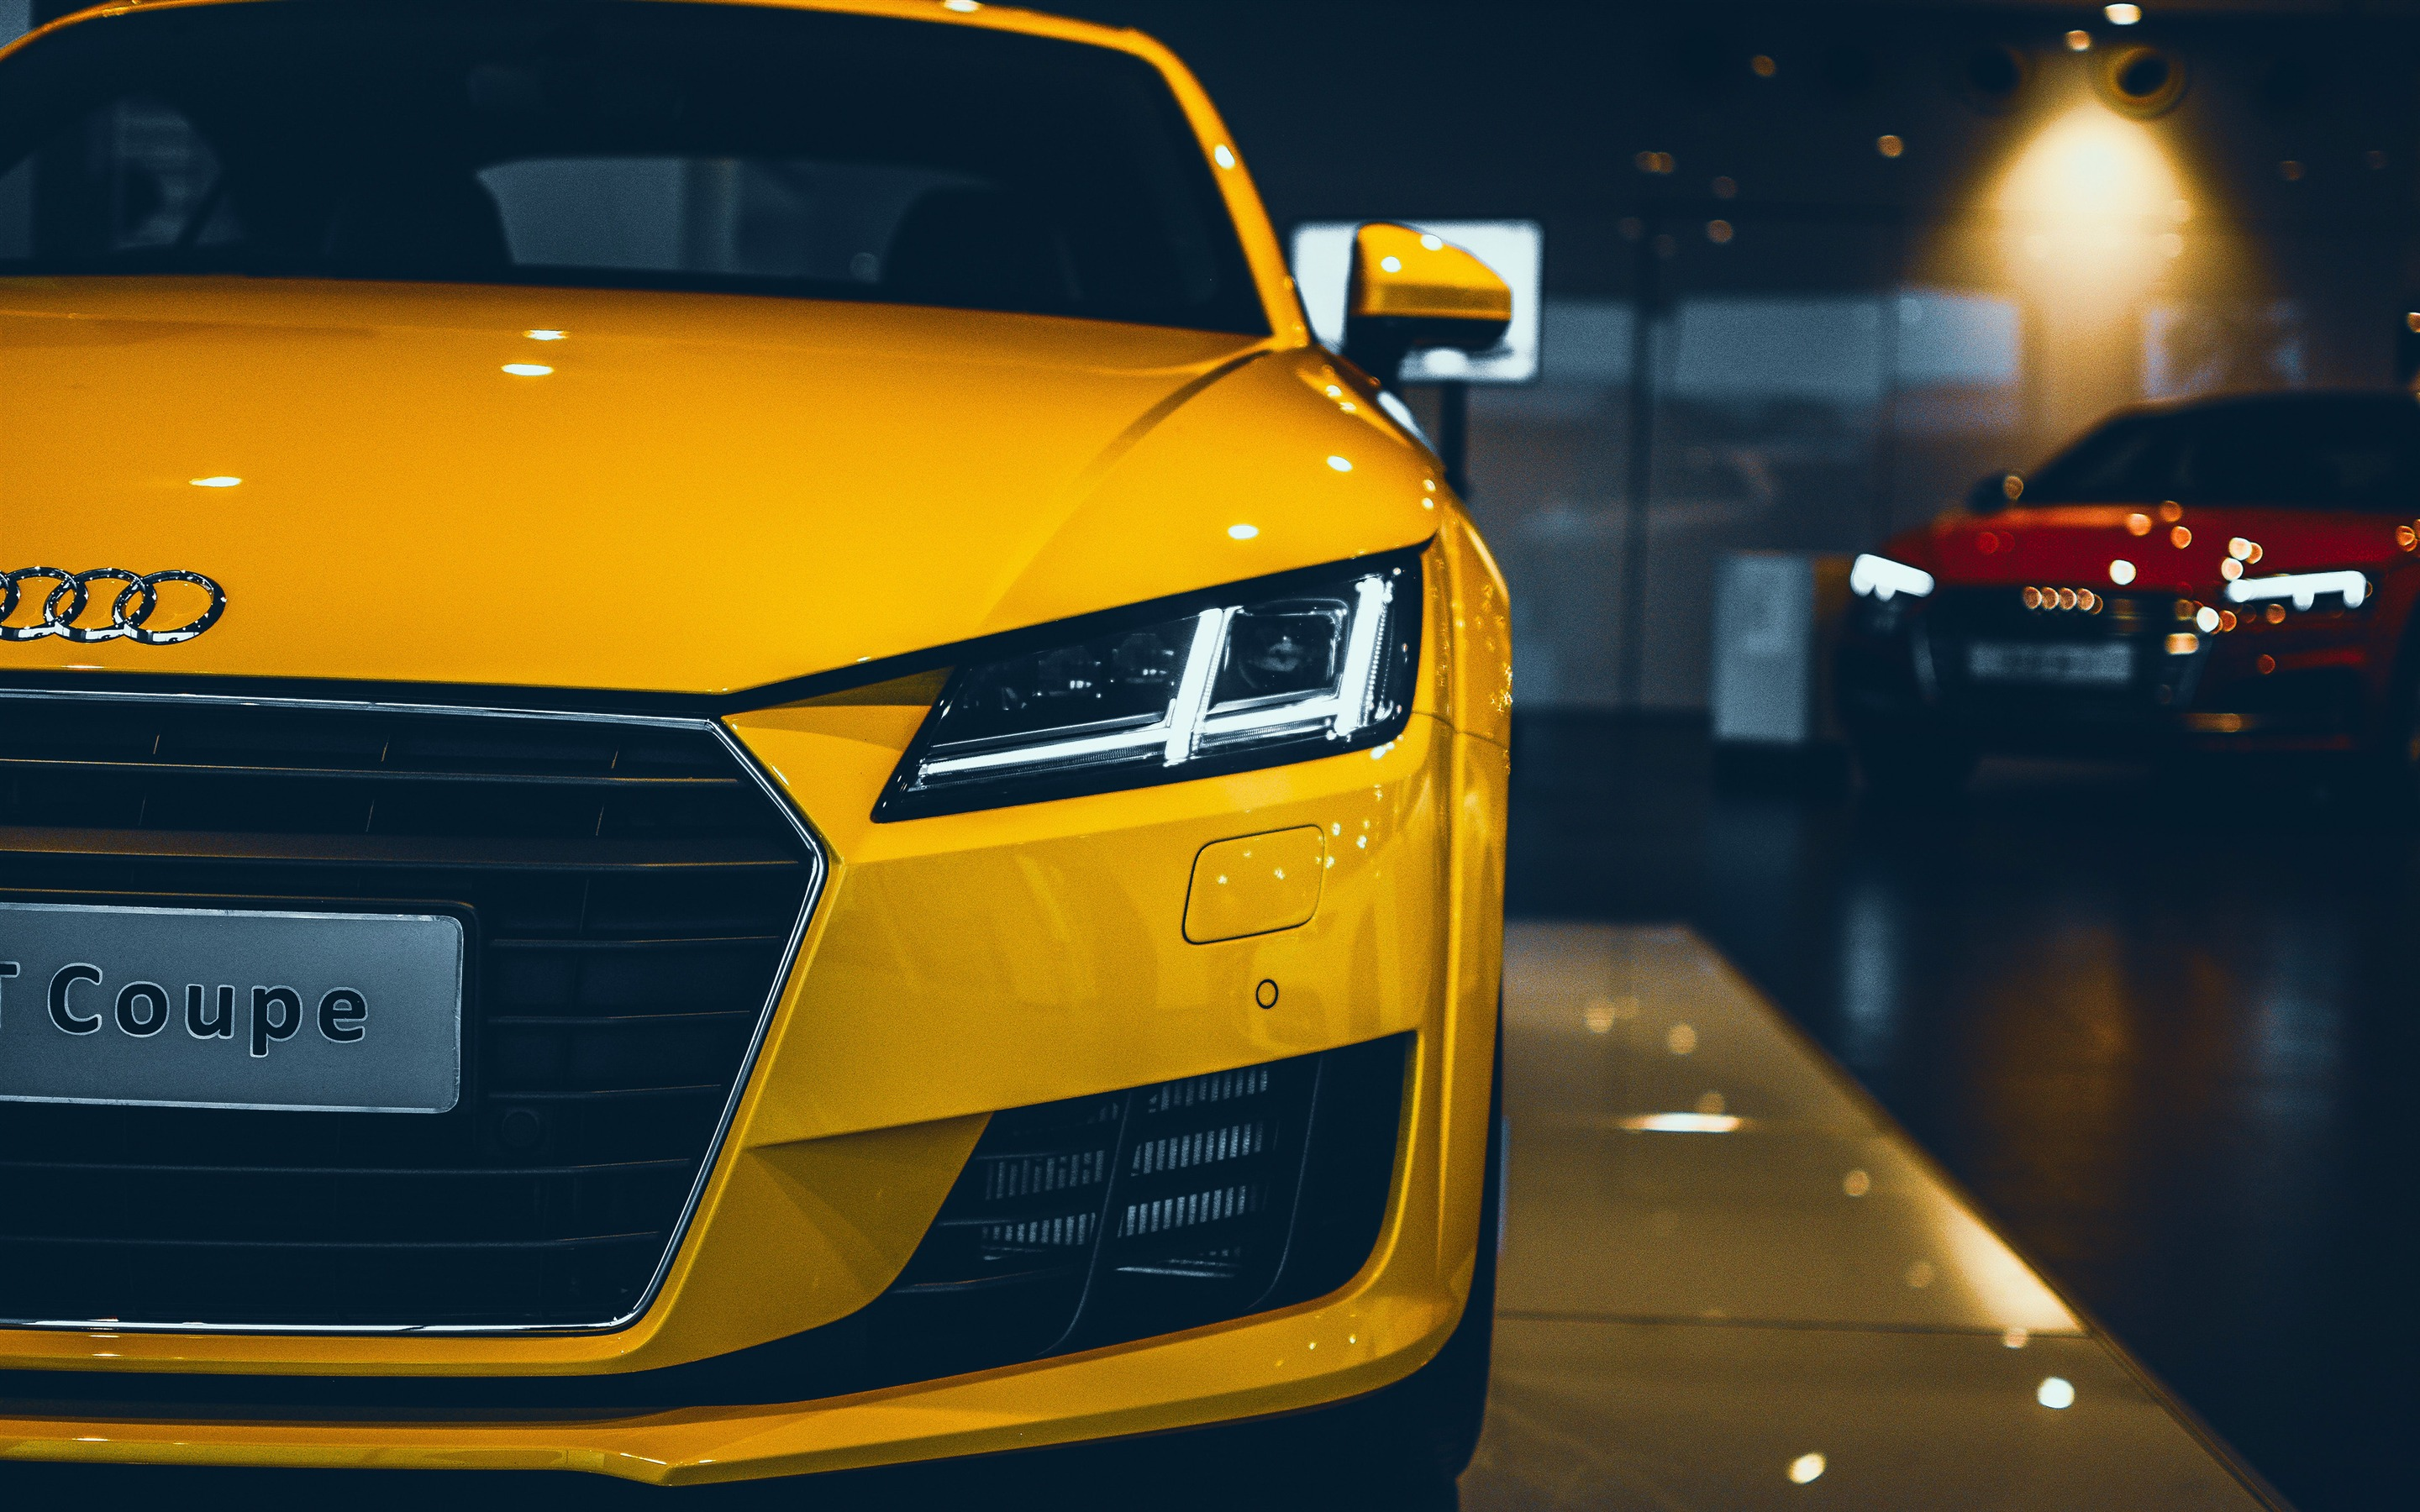 2018 Yellow Series Audi Car Lights Closeup Preview